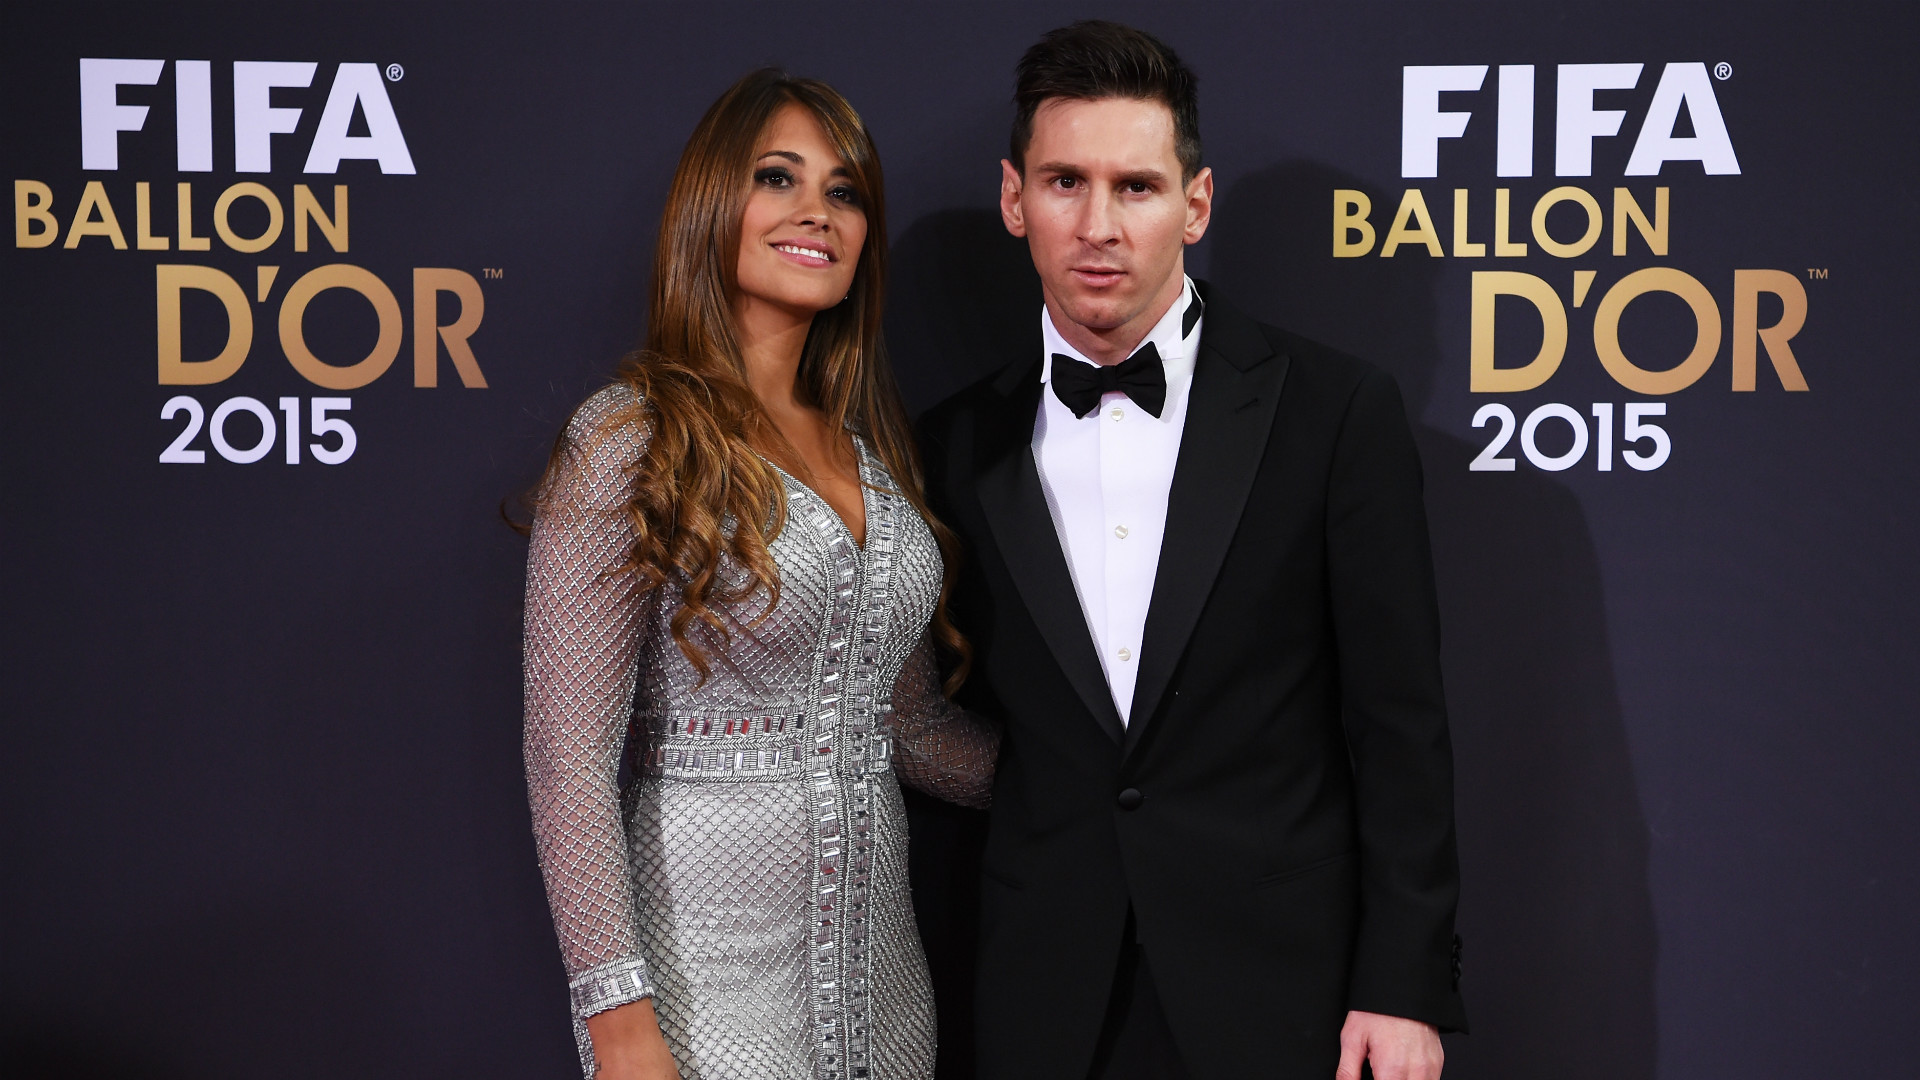 08052014e Messi's new contract is reportedly worth a net £500,000 (€565,000) a week.  It's difficult to compare exactly due to different tax rules and bonuses,  ...